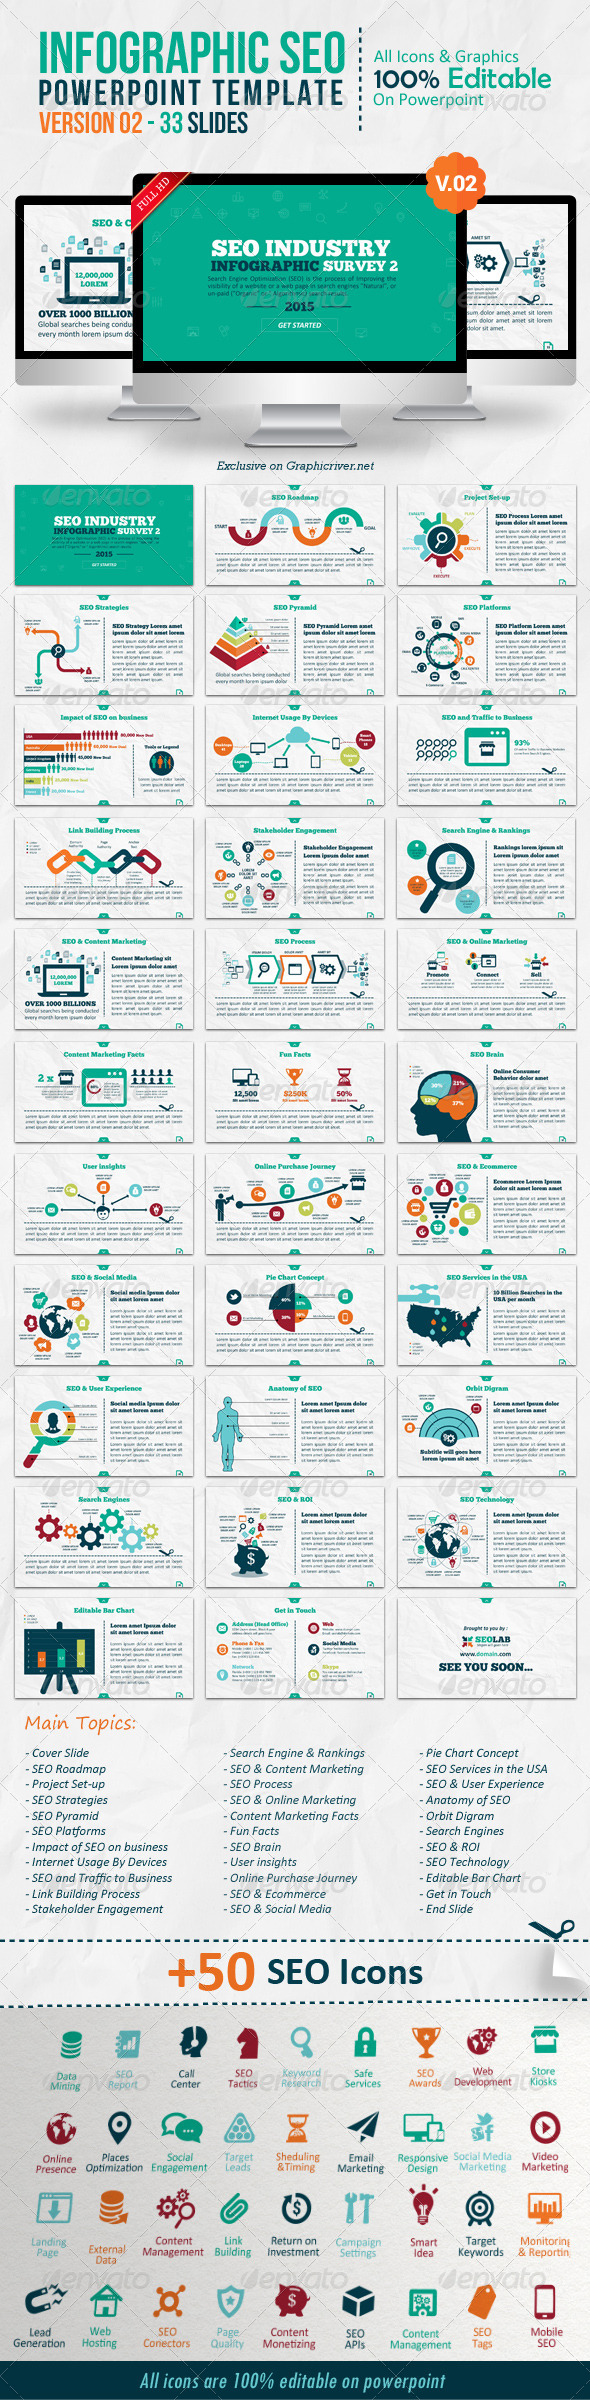 GraphicRiver Infographic SEO Powerpoint V.02 8339363